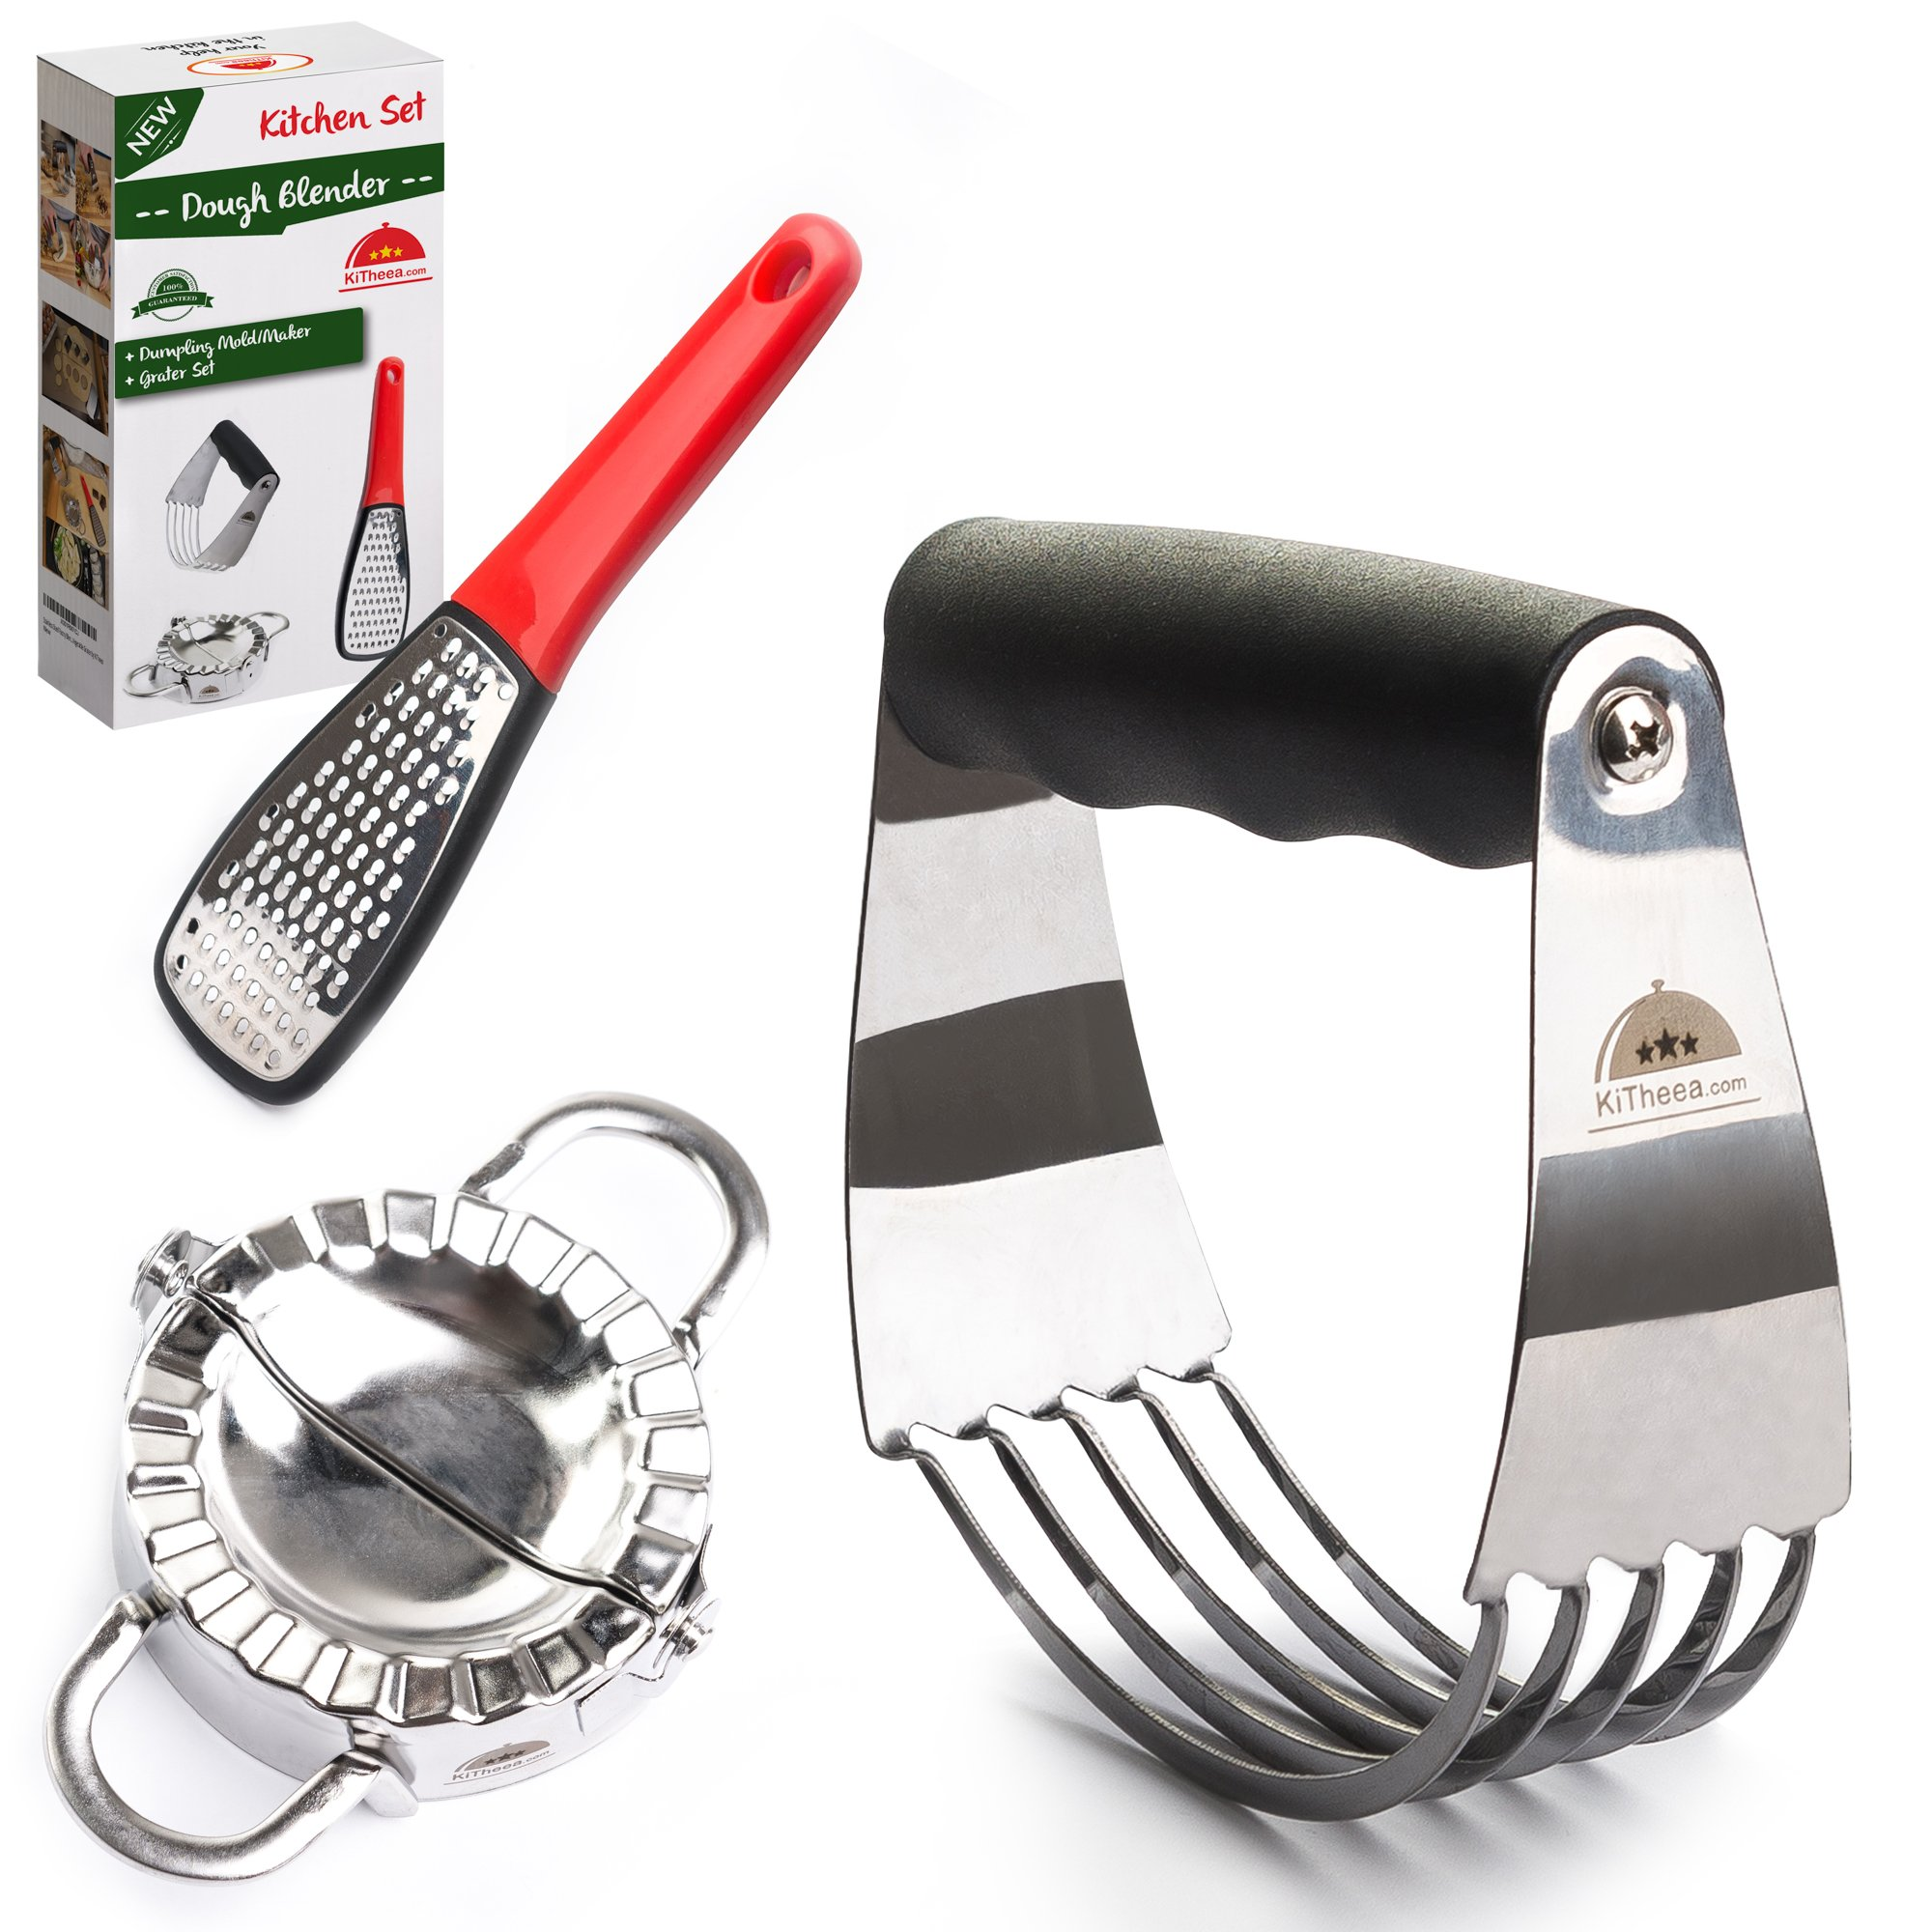 Stainless Steel Pastry Cutter Set - Dough Blender and Biscuit Cutters - Dough Whisk - Perfect as a Pie Crust Cutters or Butter Slicer - Dumpling Ravioli Maker by KiTheea